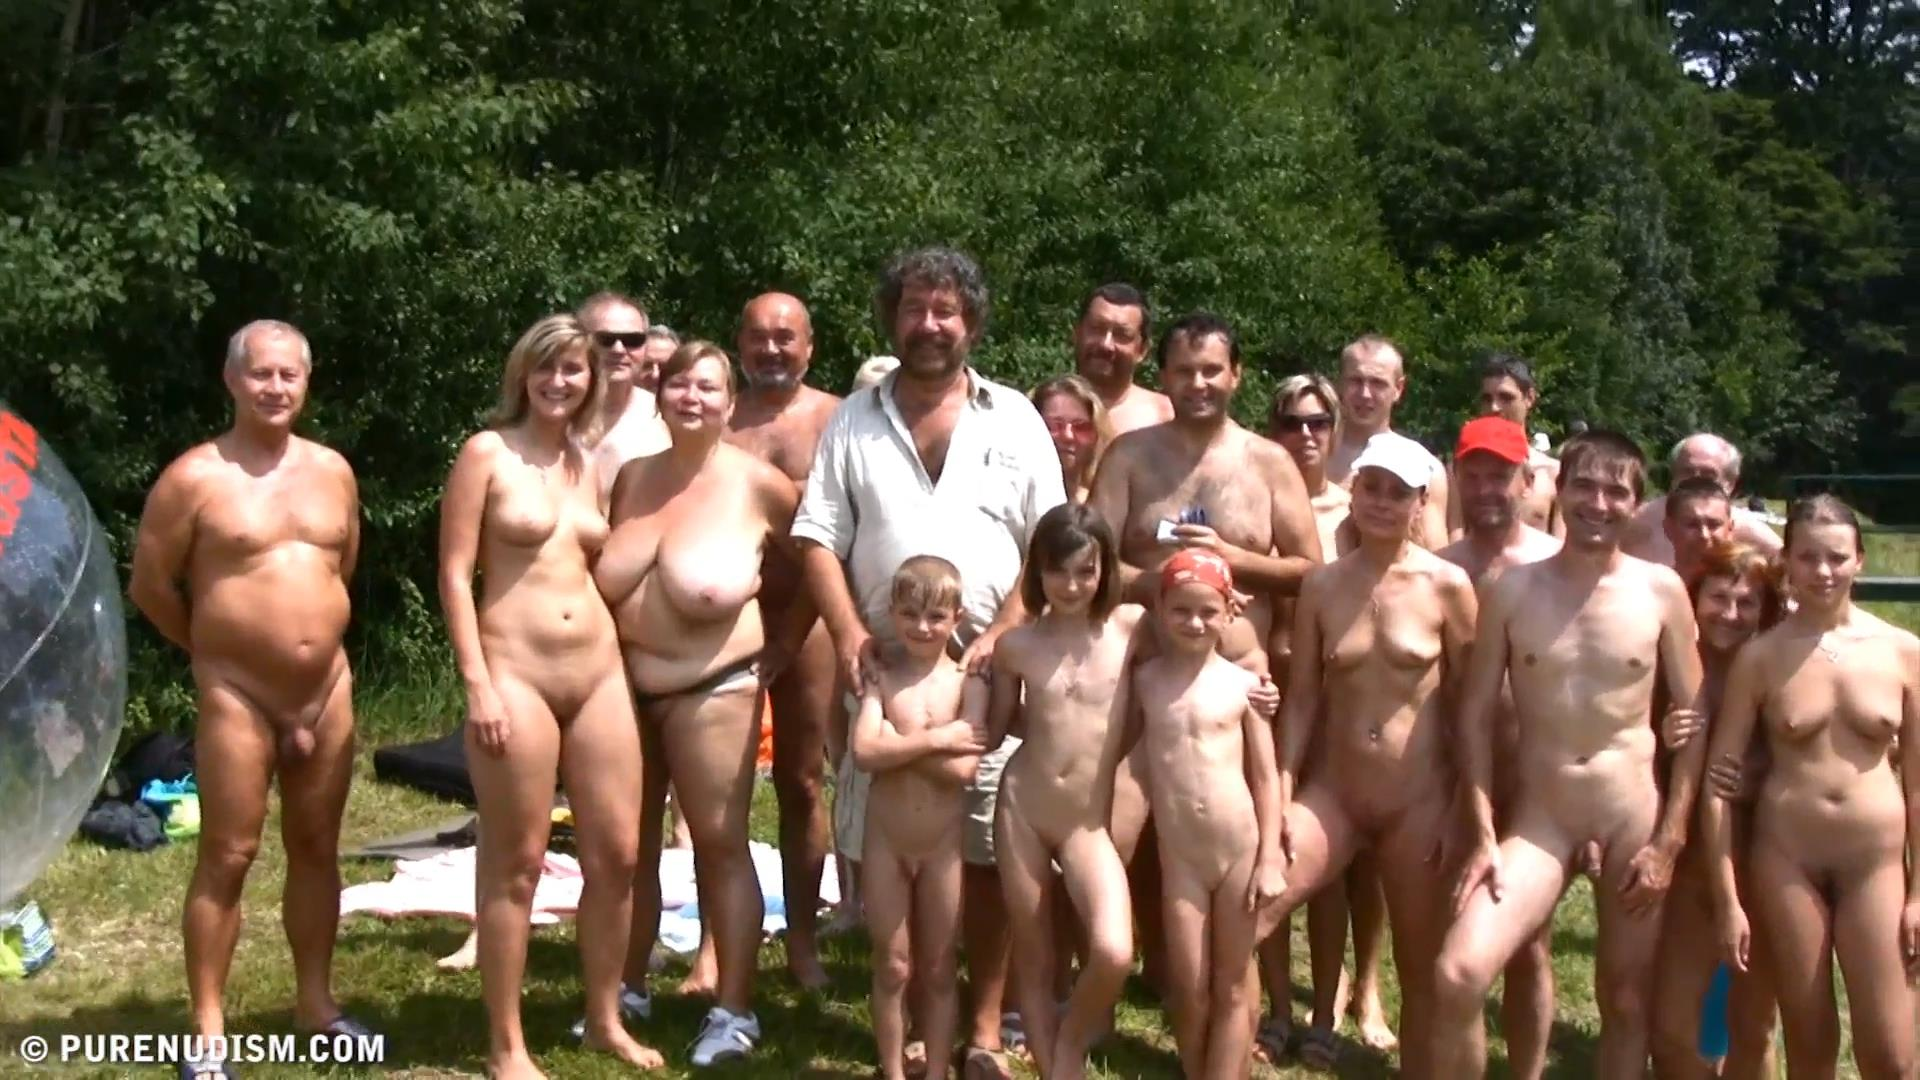 Family naturist pics nudist gallery